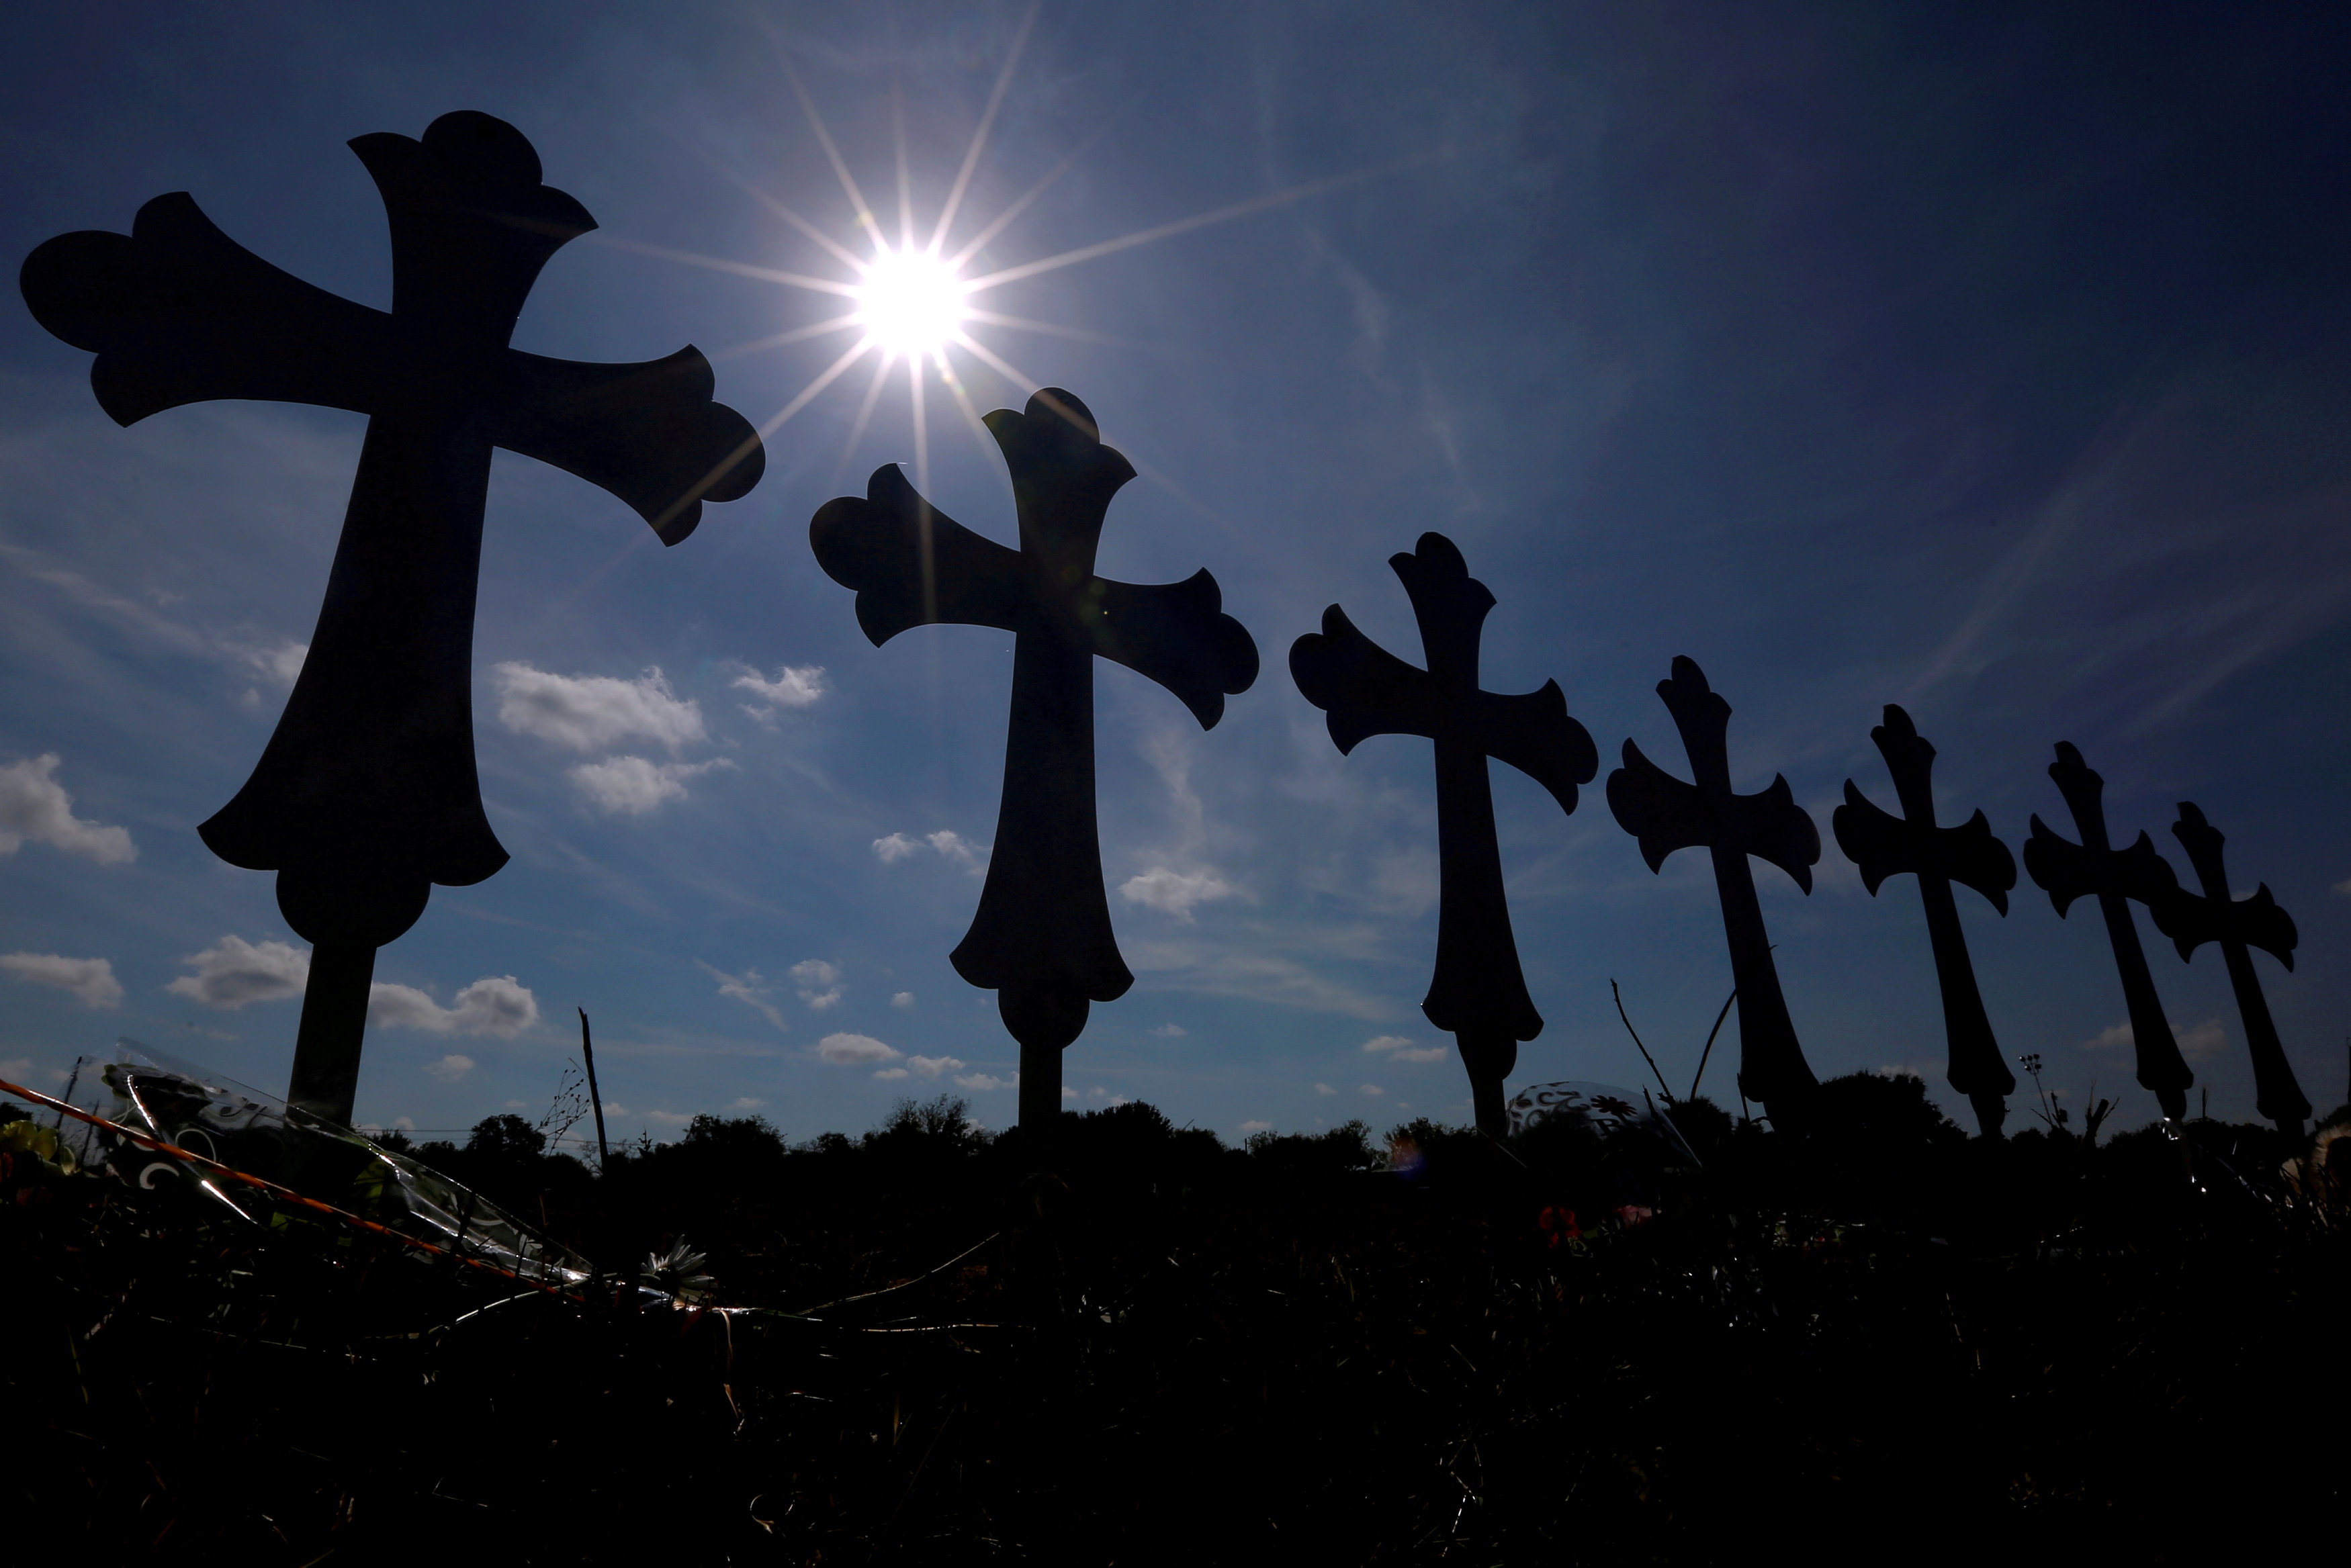 Crosses are seen placed at a memorial in memory of the victims killed in the shooting at the First Baptist Church of Sutherland Springs, Texas, U.S., November 7, 2017. REUTERS/Jonathan